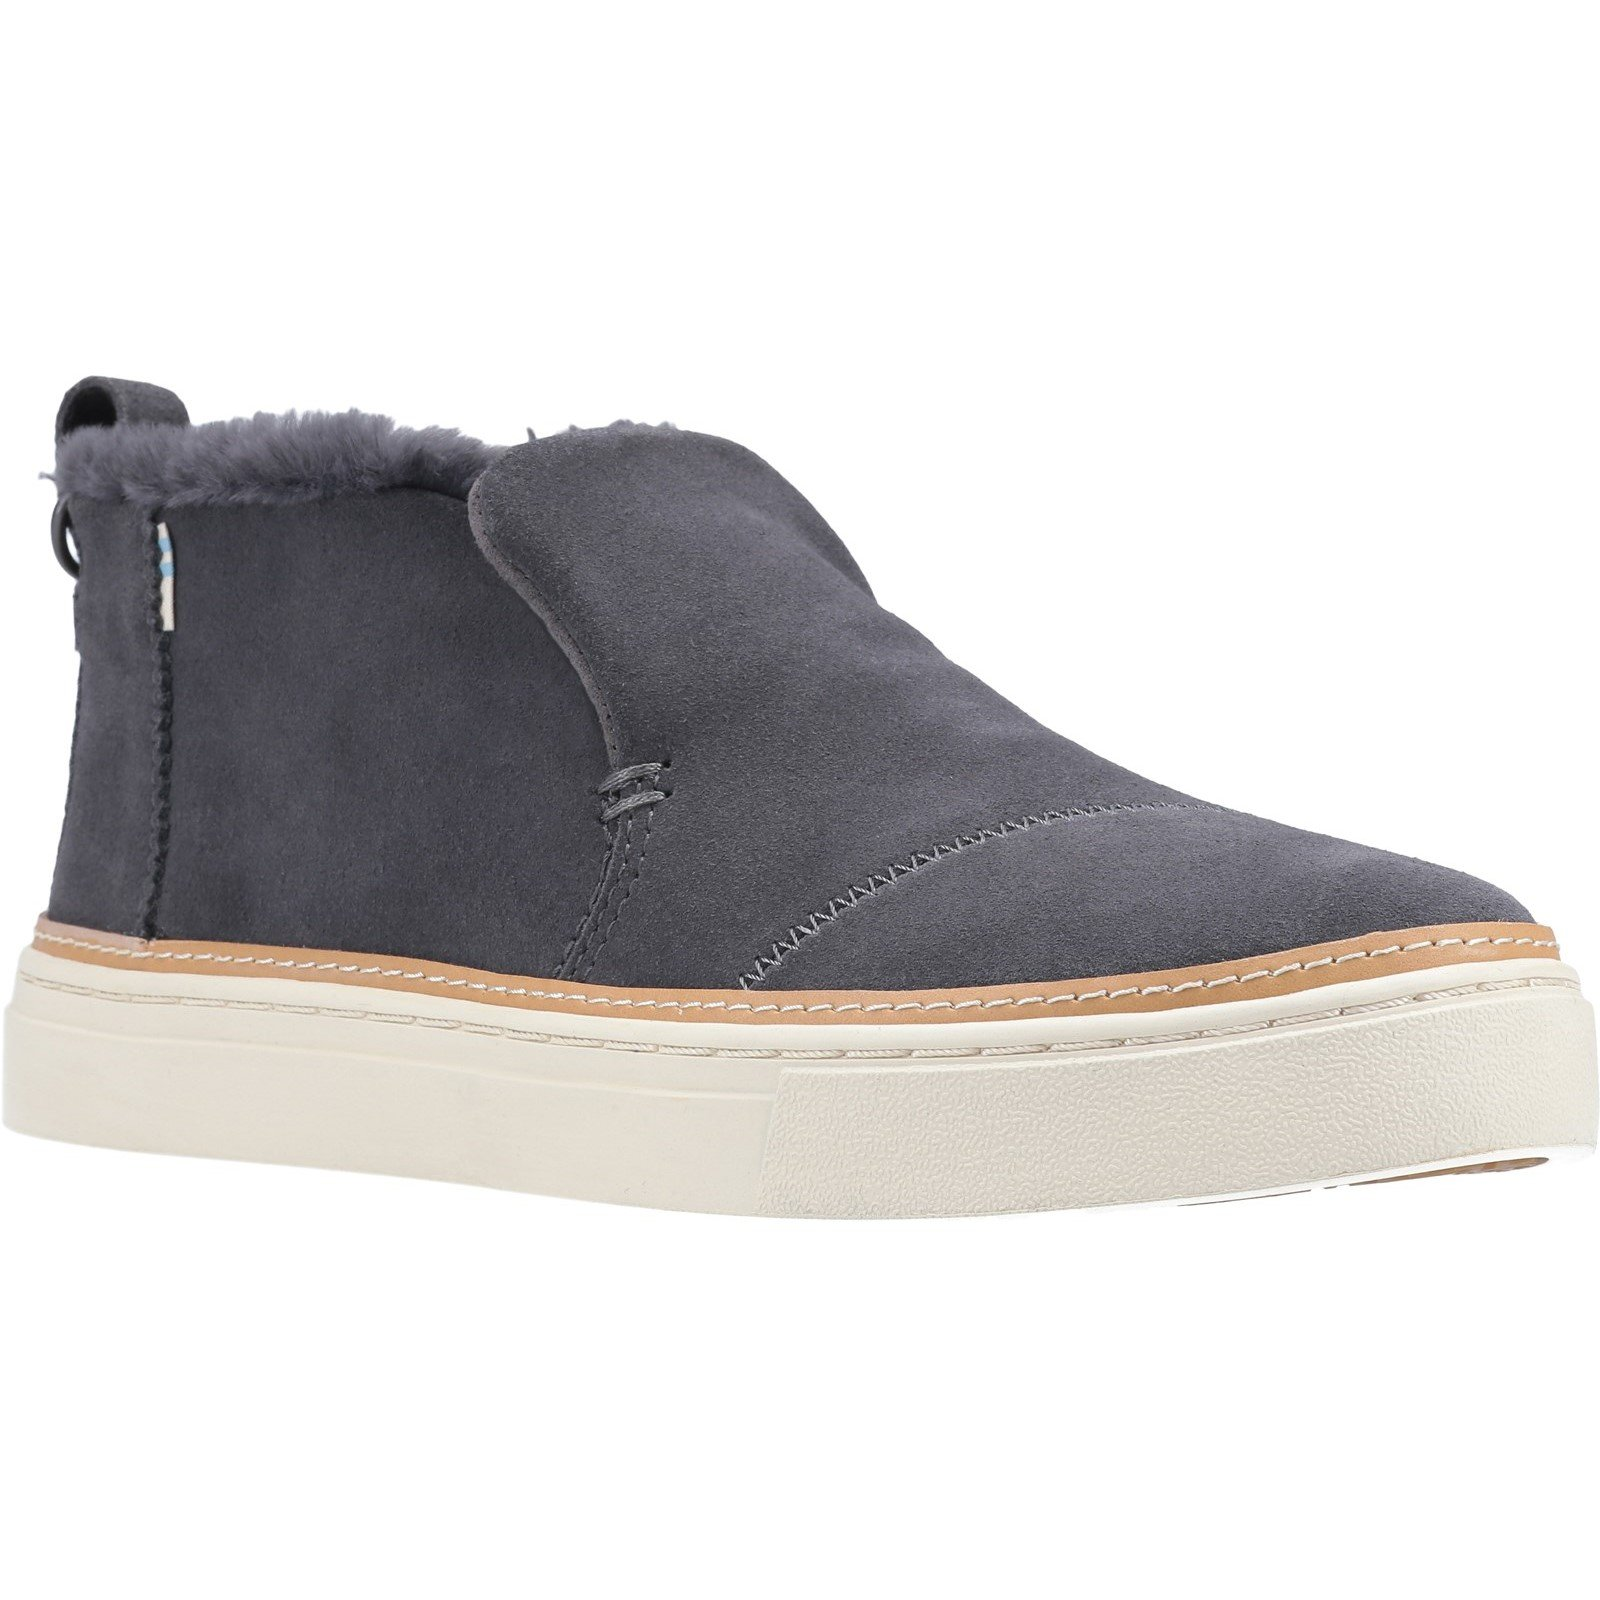 Hush Puppies Men's Paxton Chelsea Boot Various Colours 32882 - Gry Suede/Faux Shearling 8